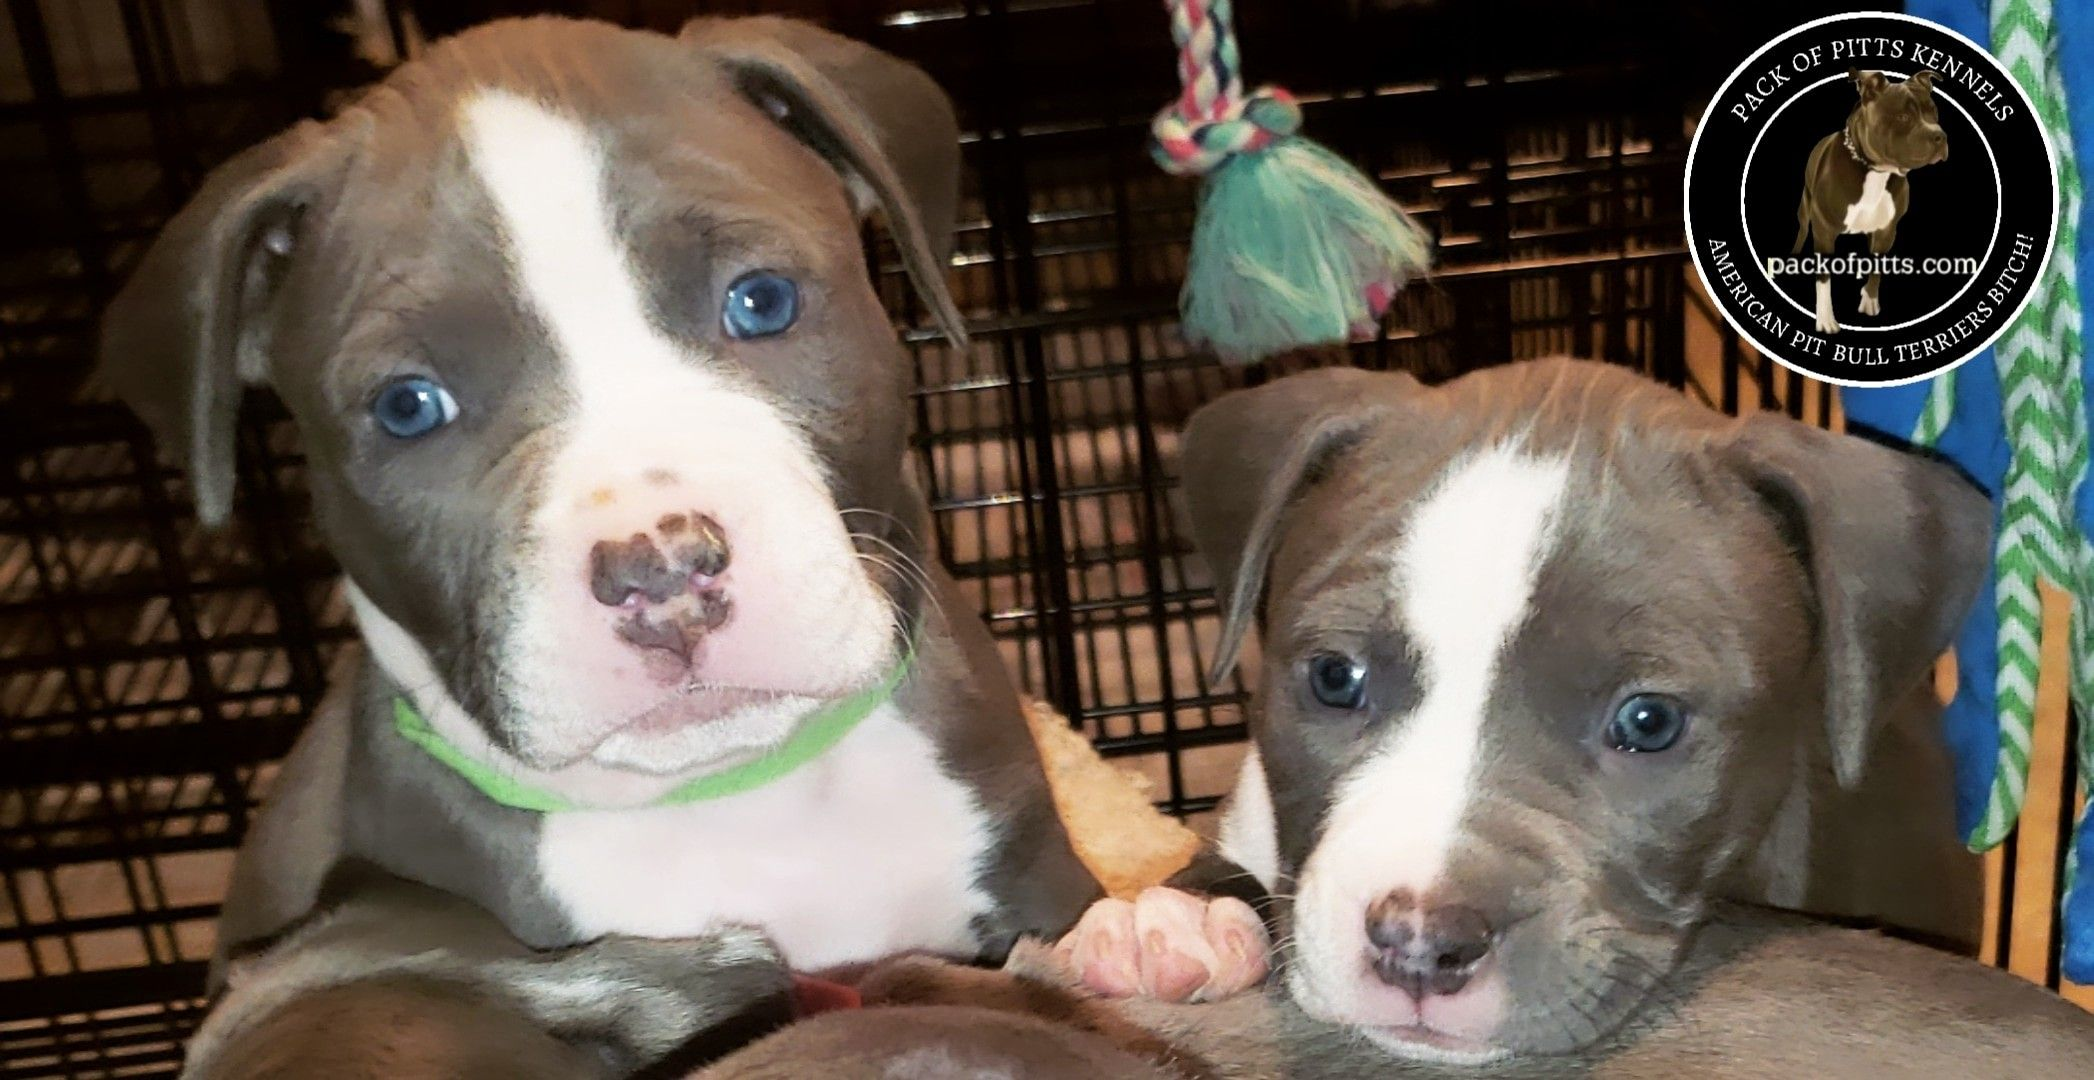 Pack blues pack of pitts kennels buffalo new york and